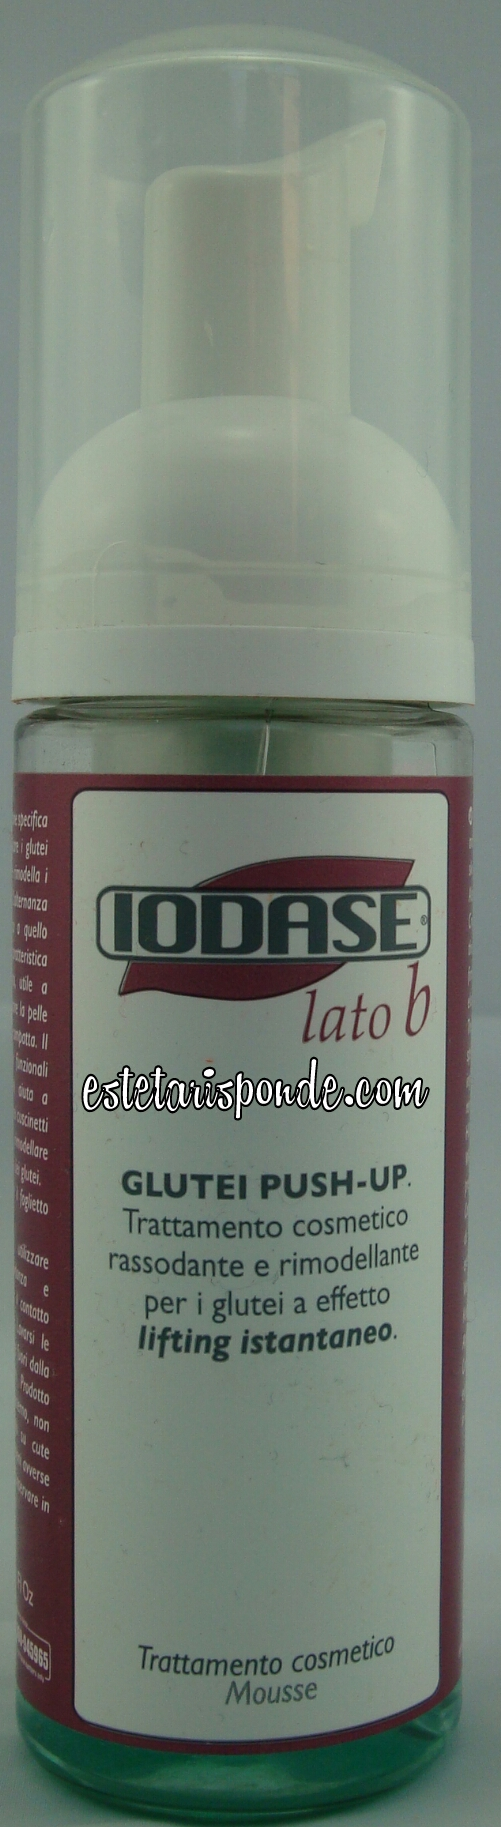 Iodase kit lato b glutei push up mousse